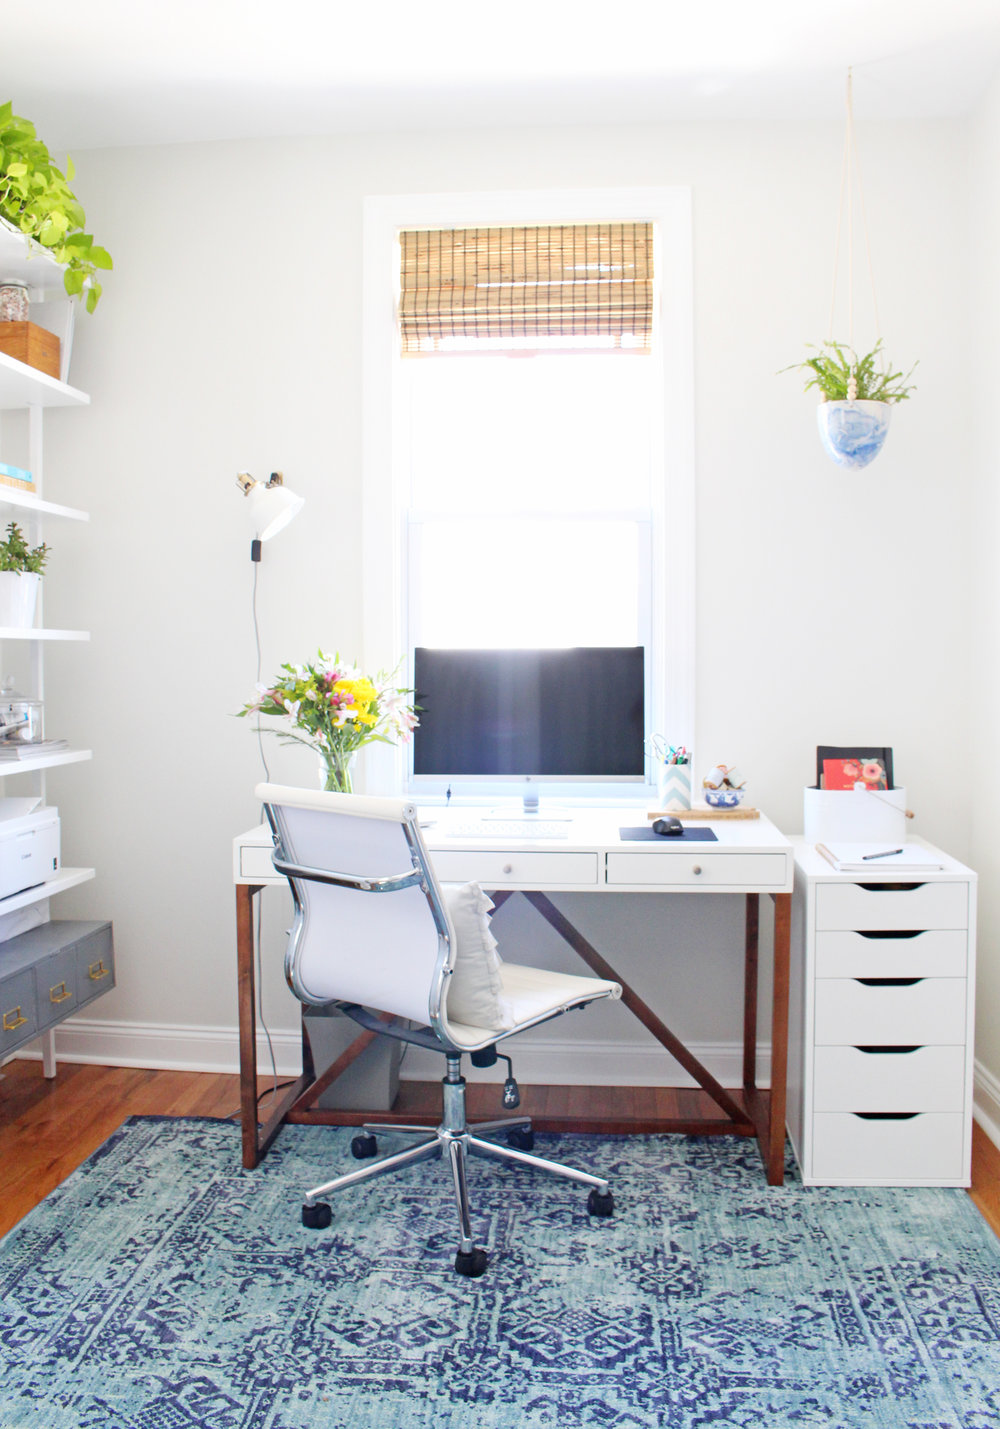 Modern, light and airy - with a touch of boho - home office.